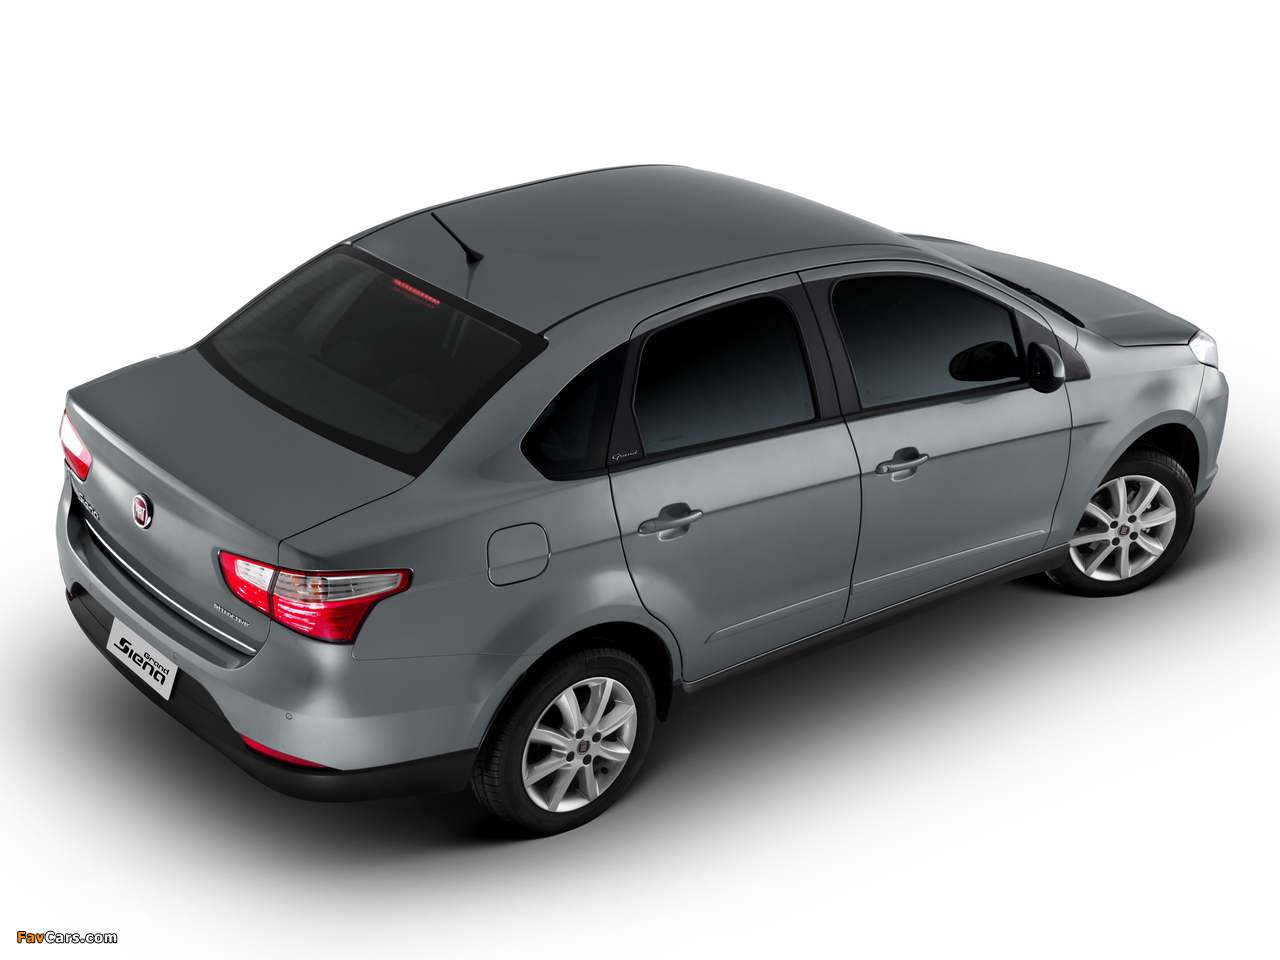 Fiat Grand Siena Attractive (326) 2012 images (1280 x 960)